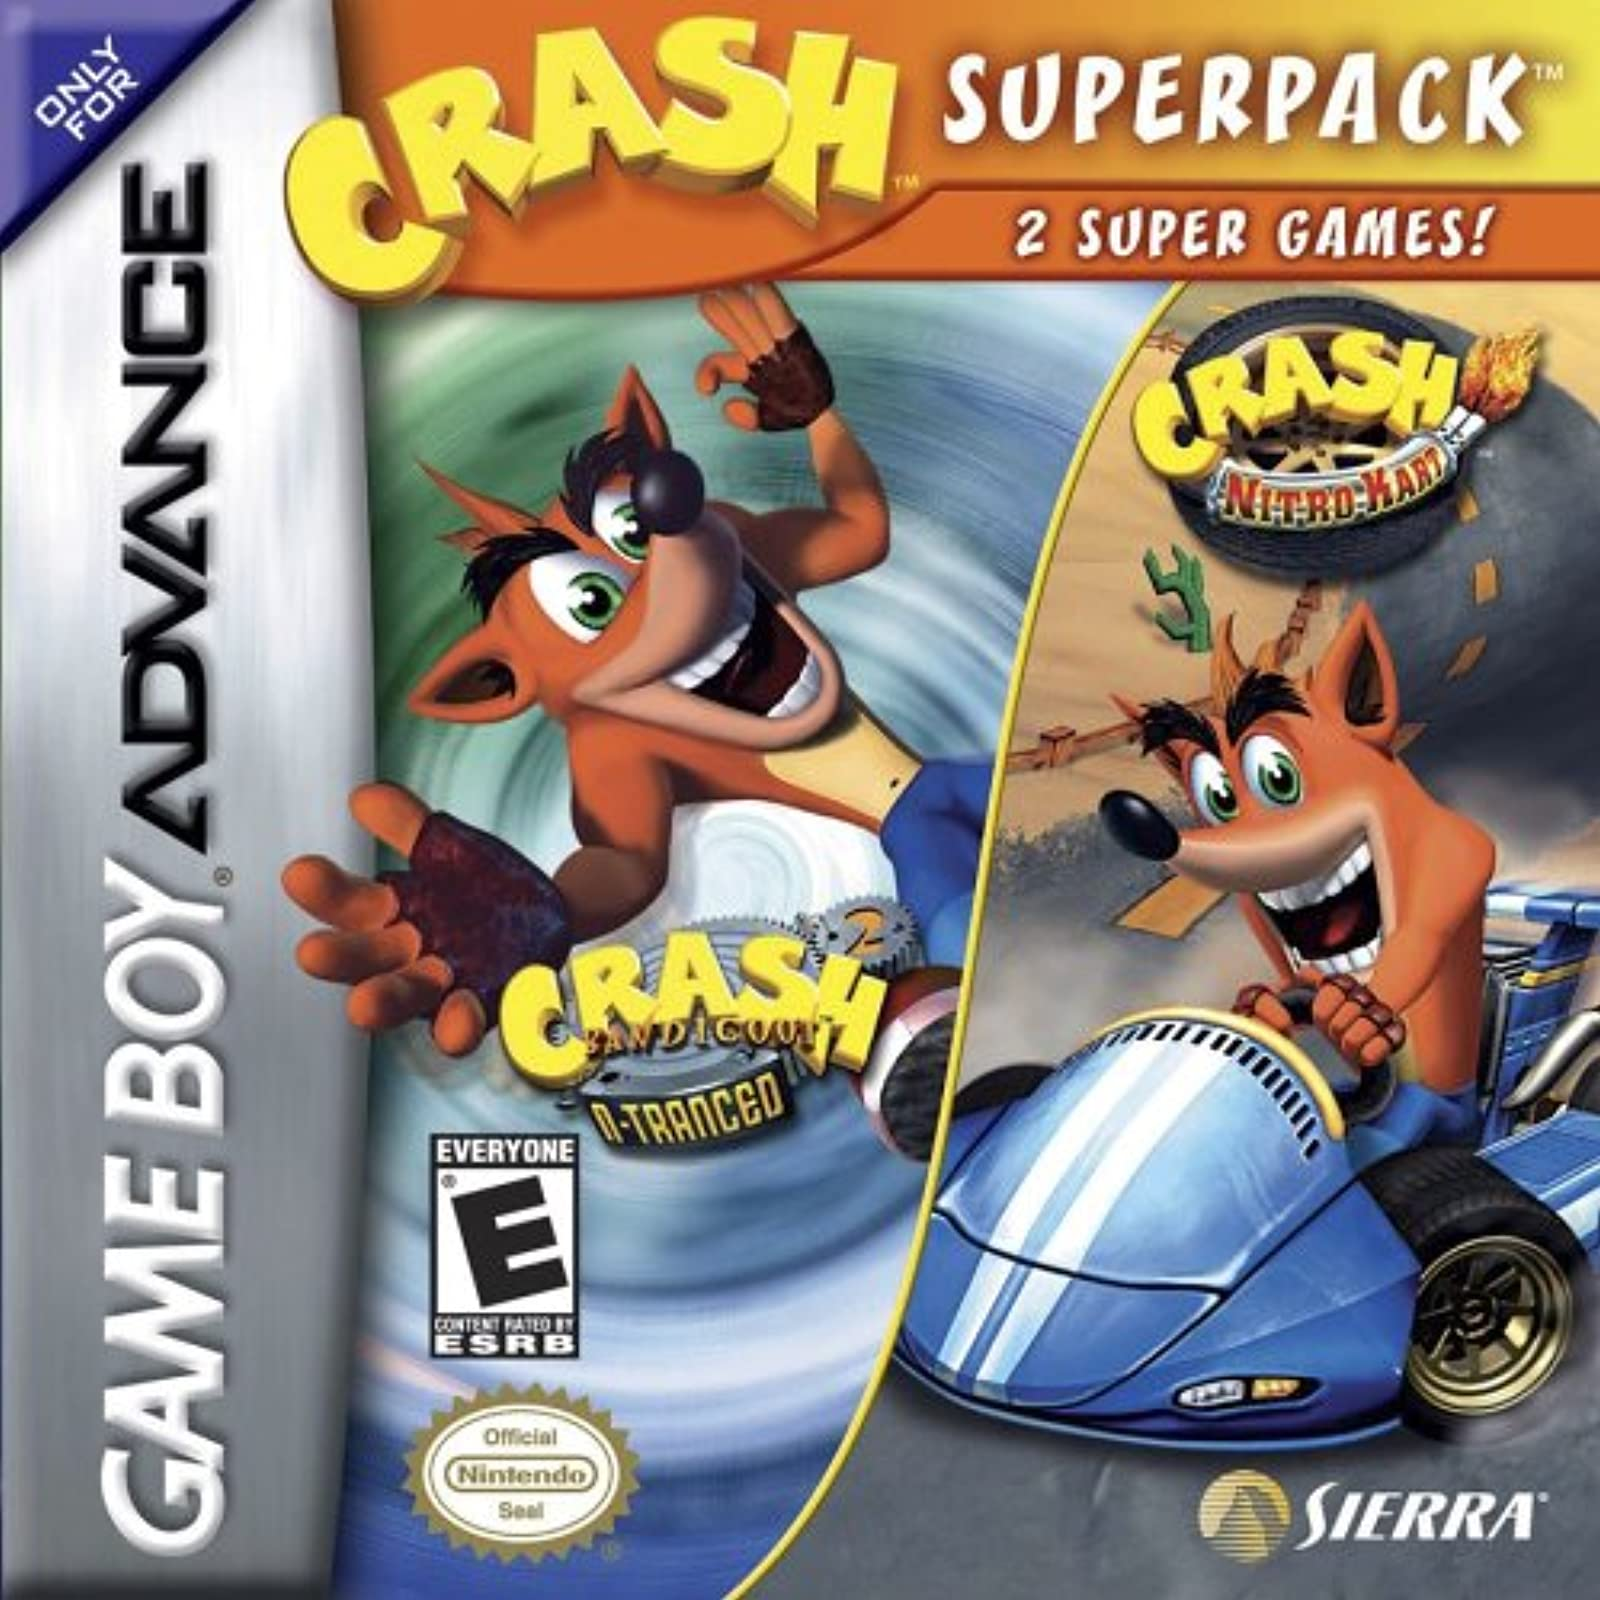 Crash SuperPack For GBA Gameboy Advance